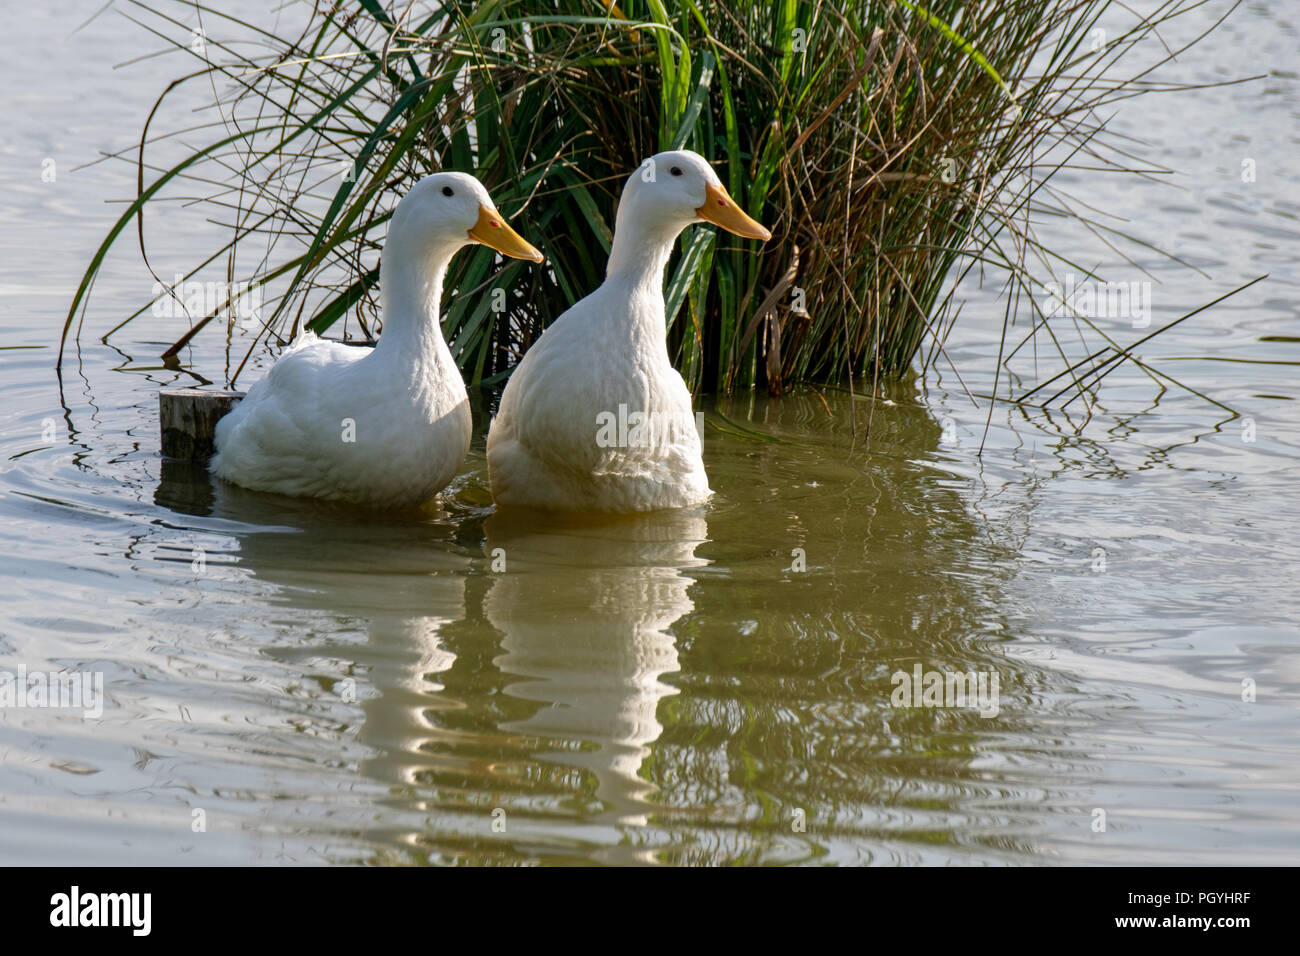 Two white pekin ducks (Anas platyrhynchos domesticus) - Stock Image